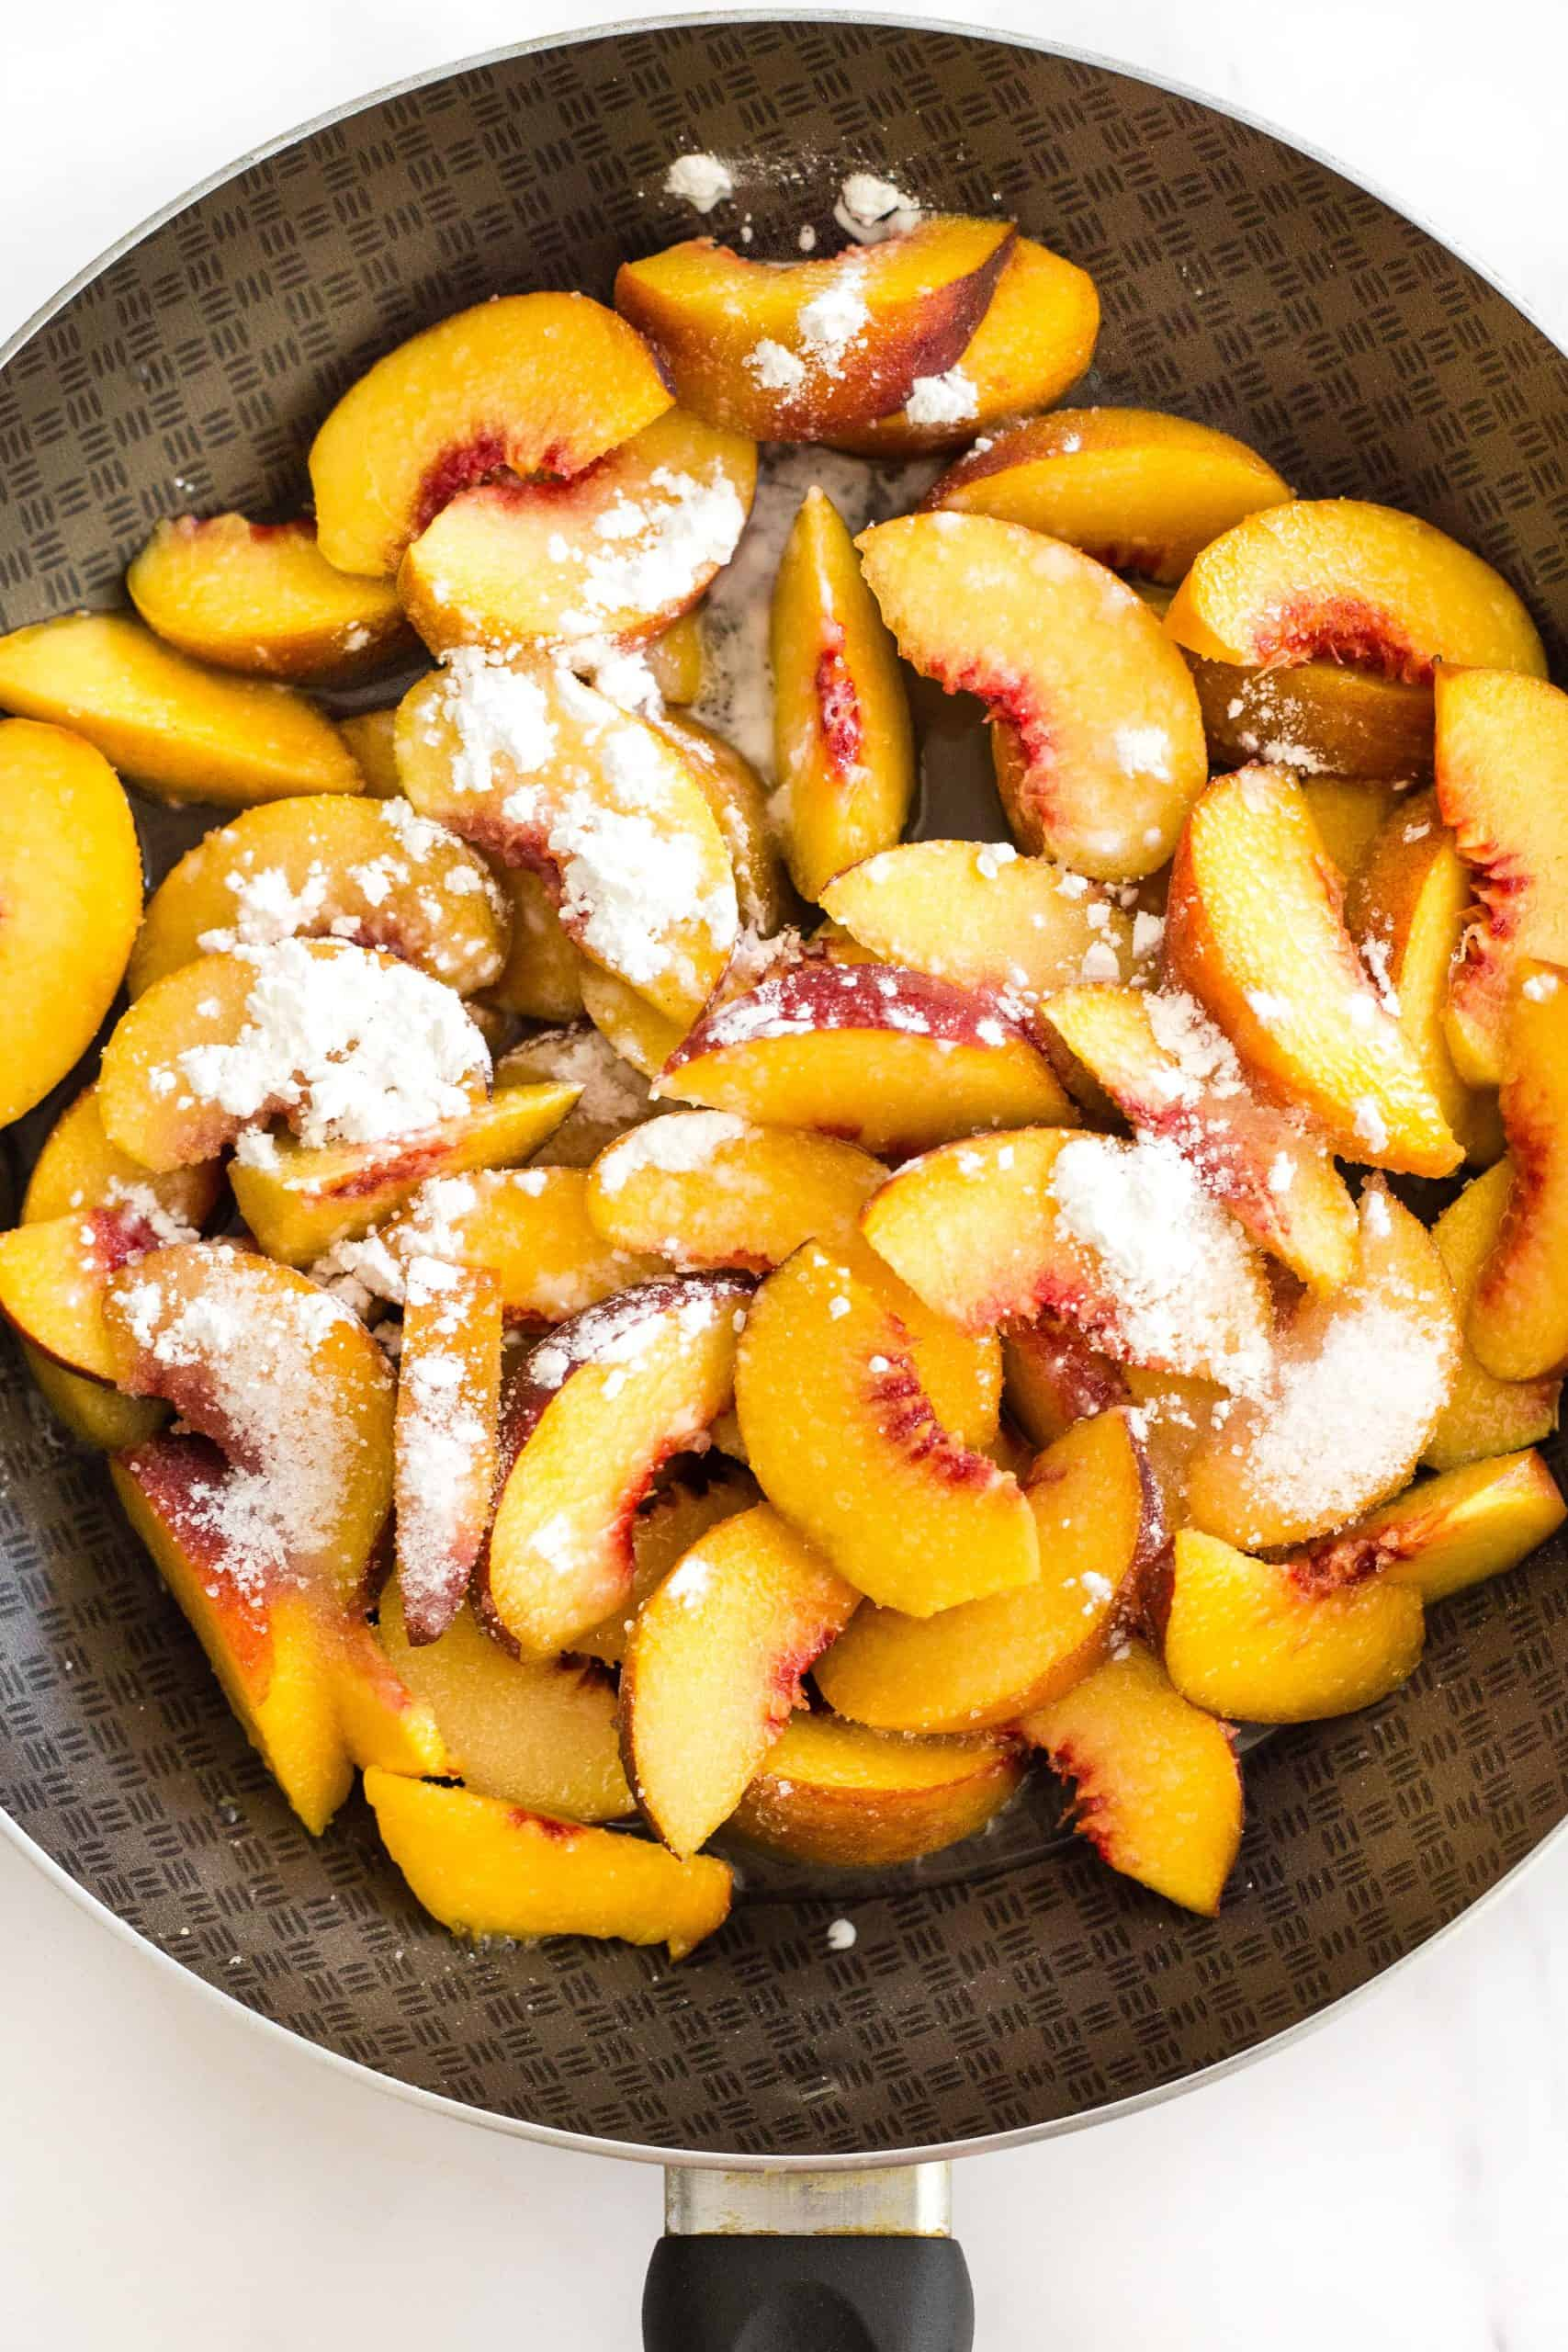 Sliced peaches and corn starch in a skillet.